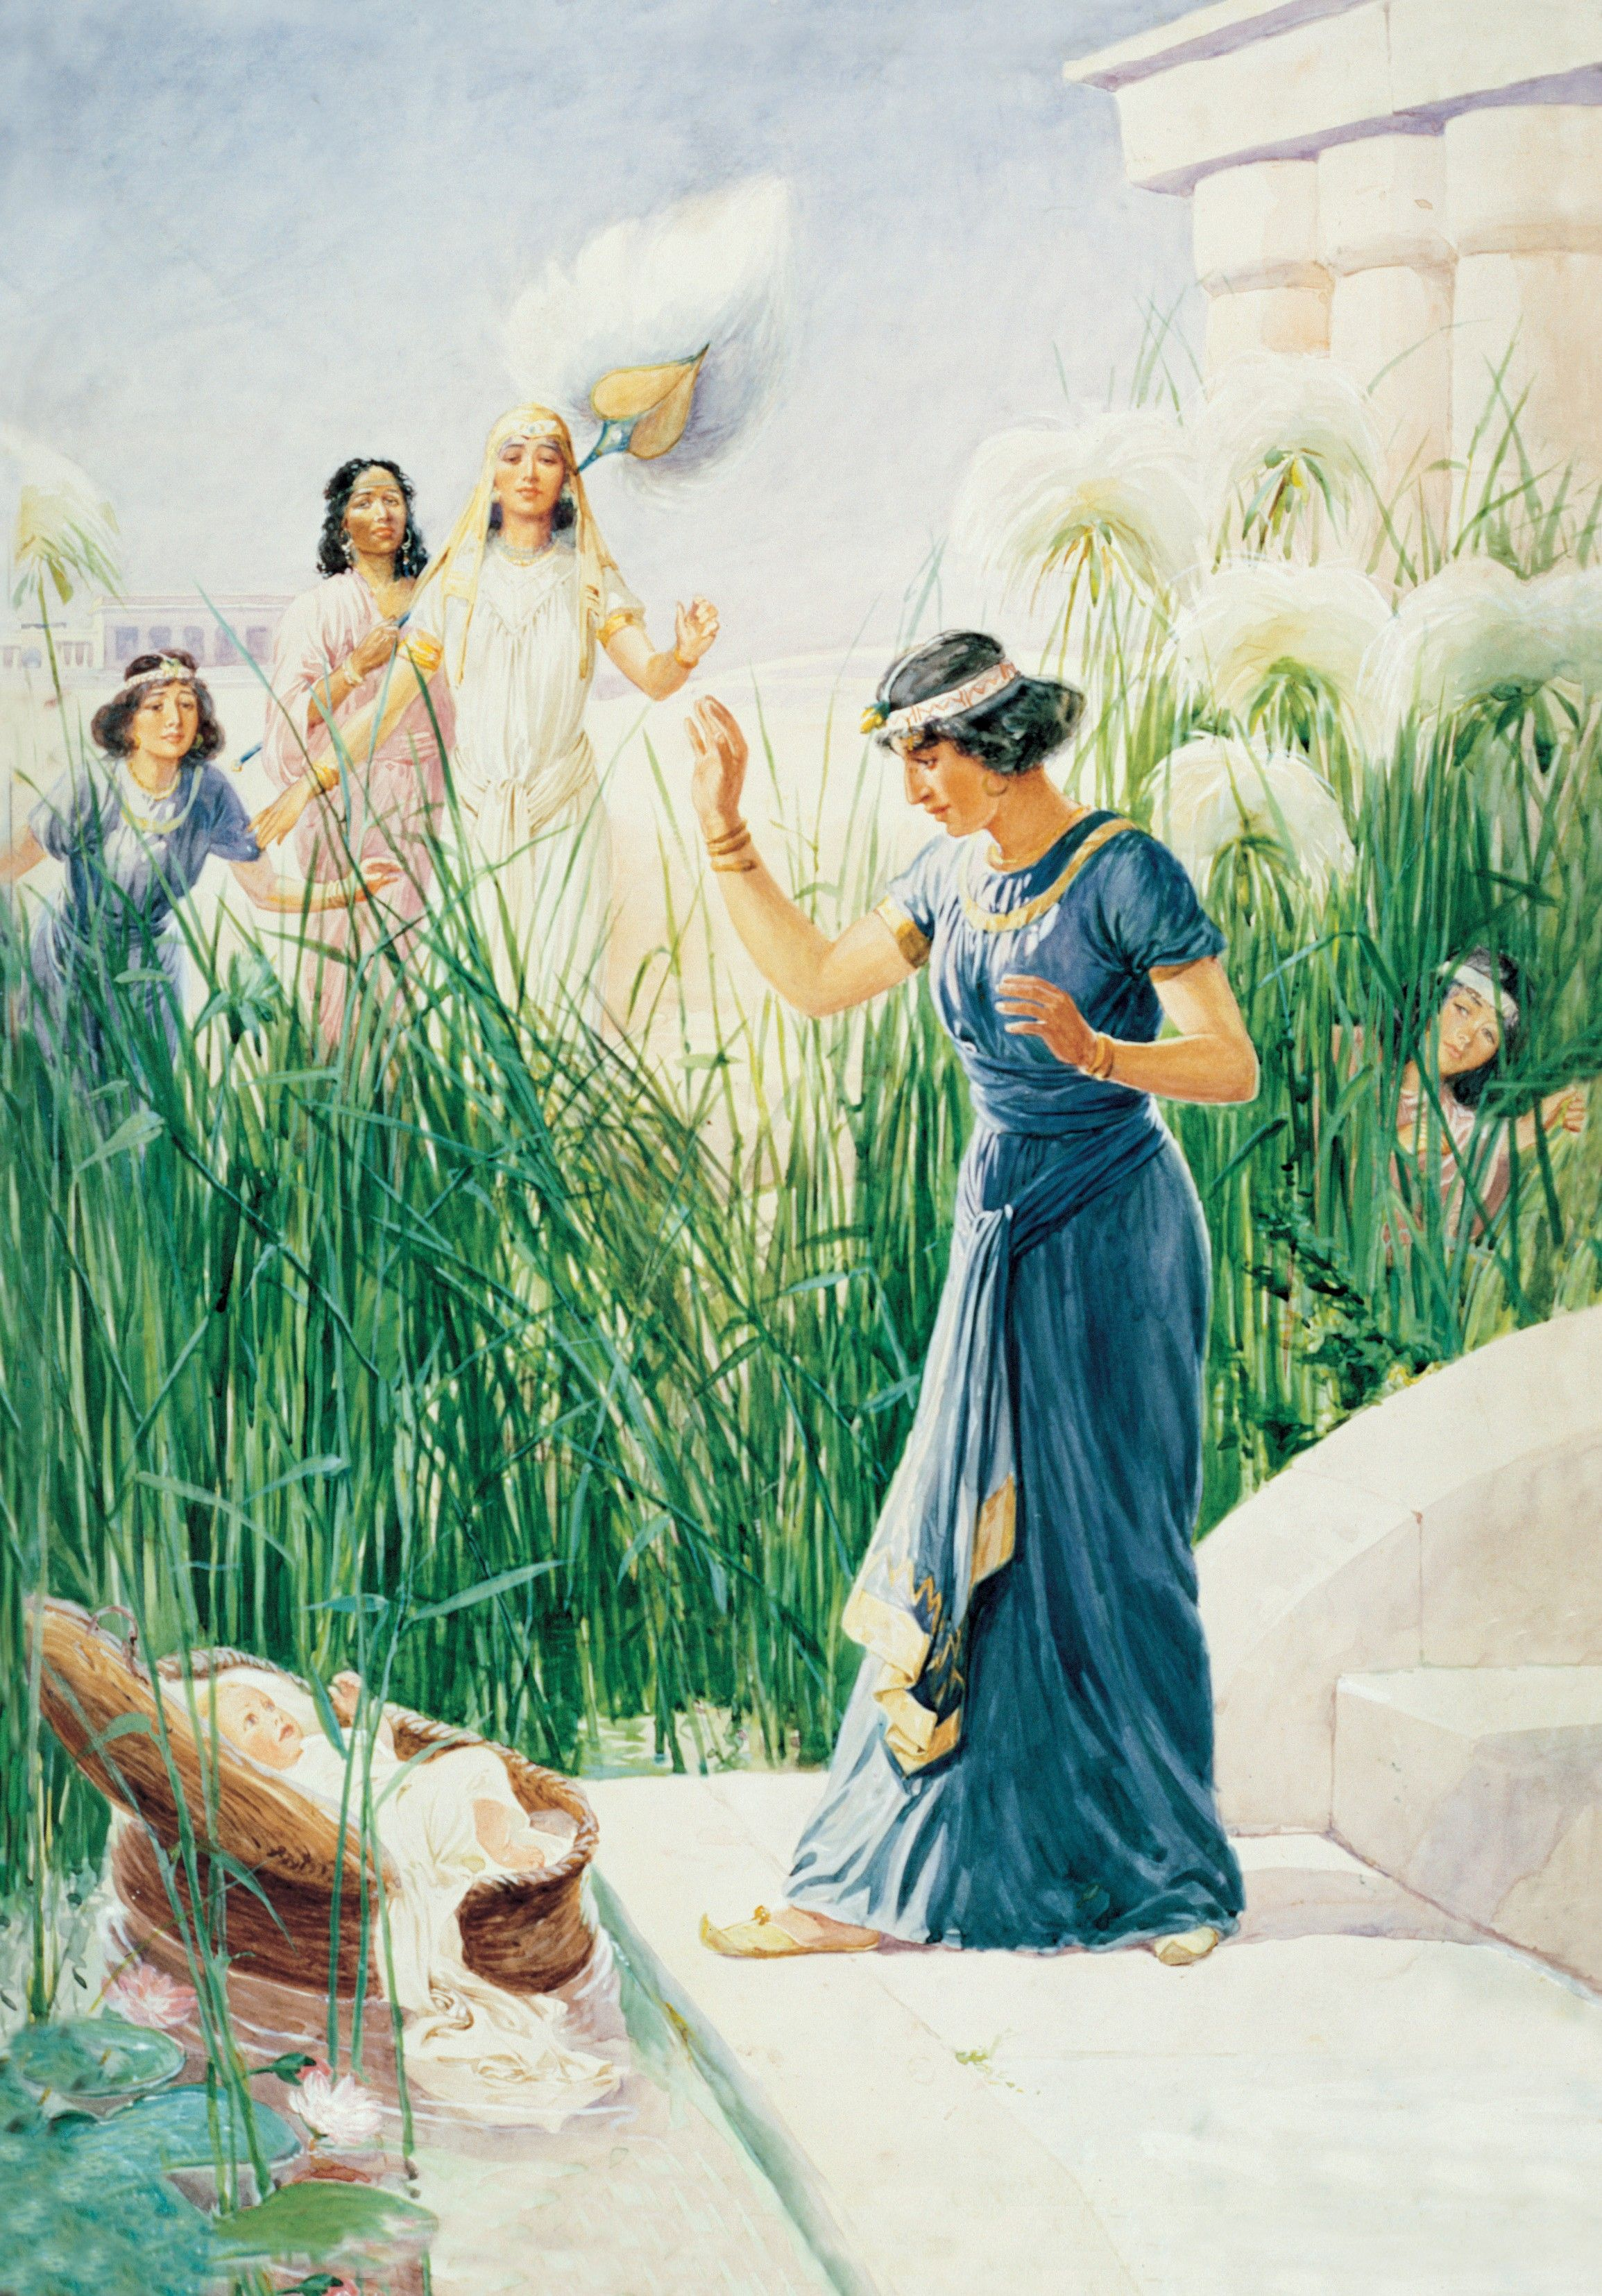 Moses in the Bulrushes, by George Soper; GAK 106; Primary manual 1-66; Primary manual 6-21; Exodus 2:5